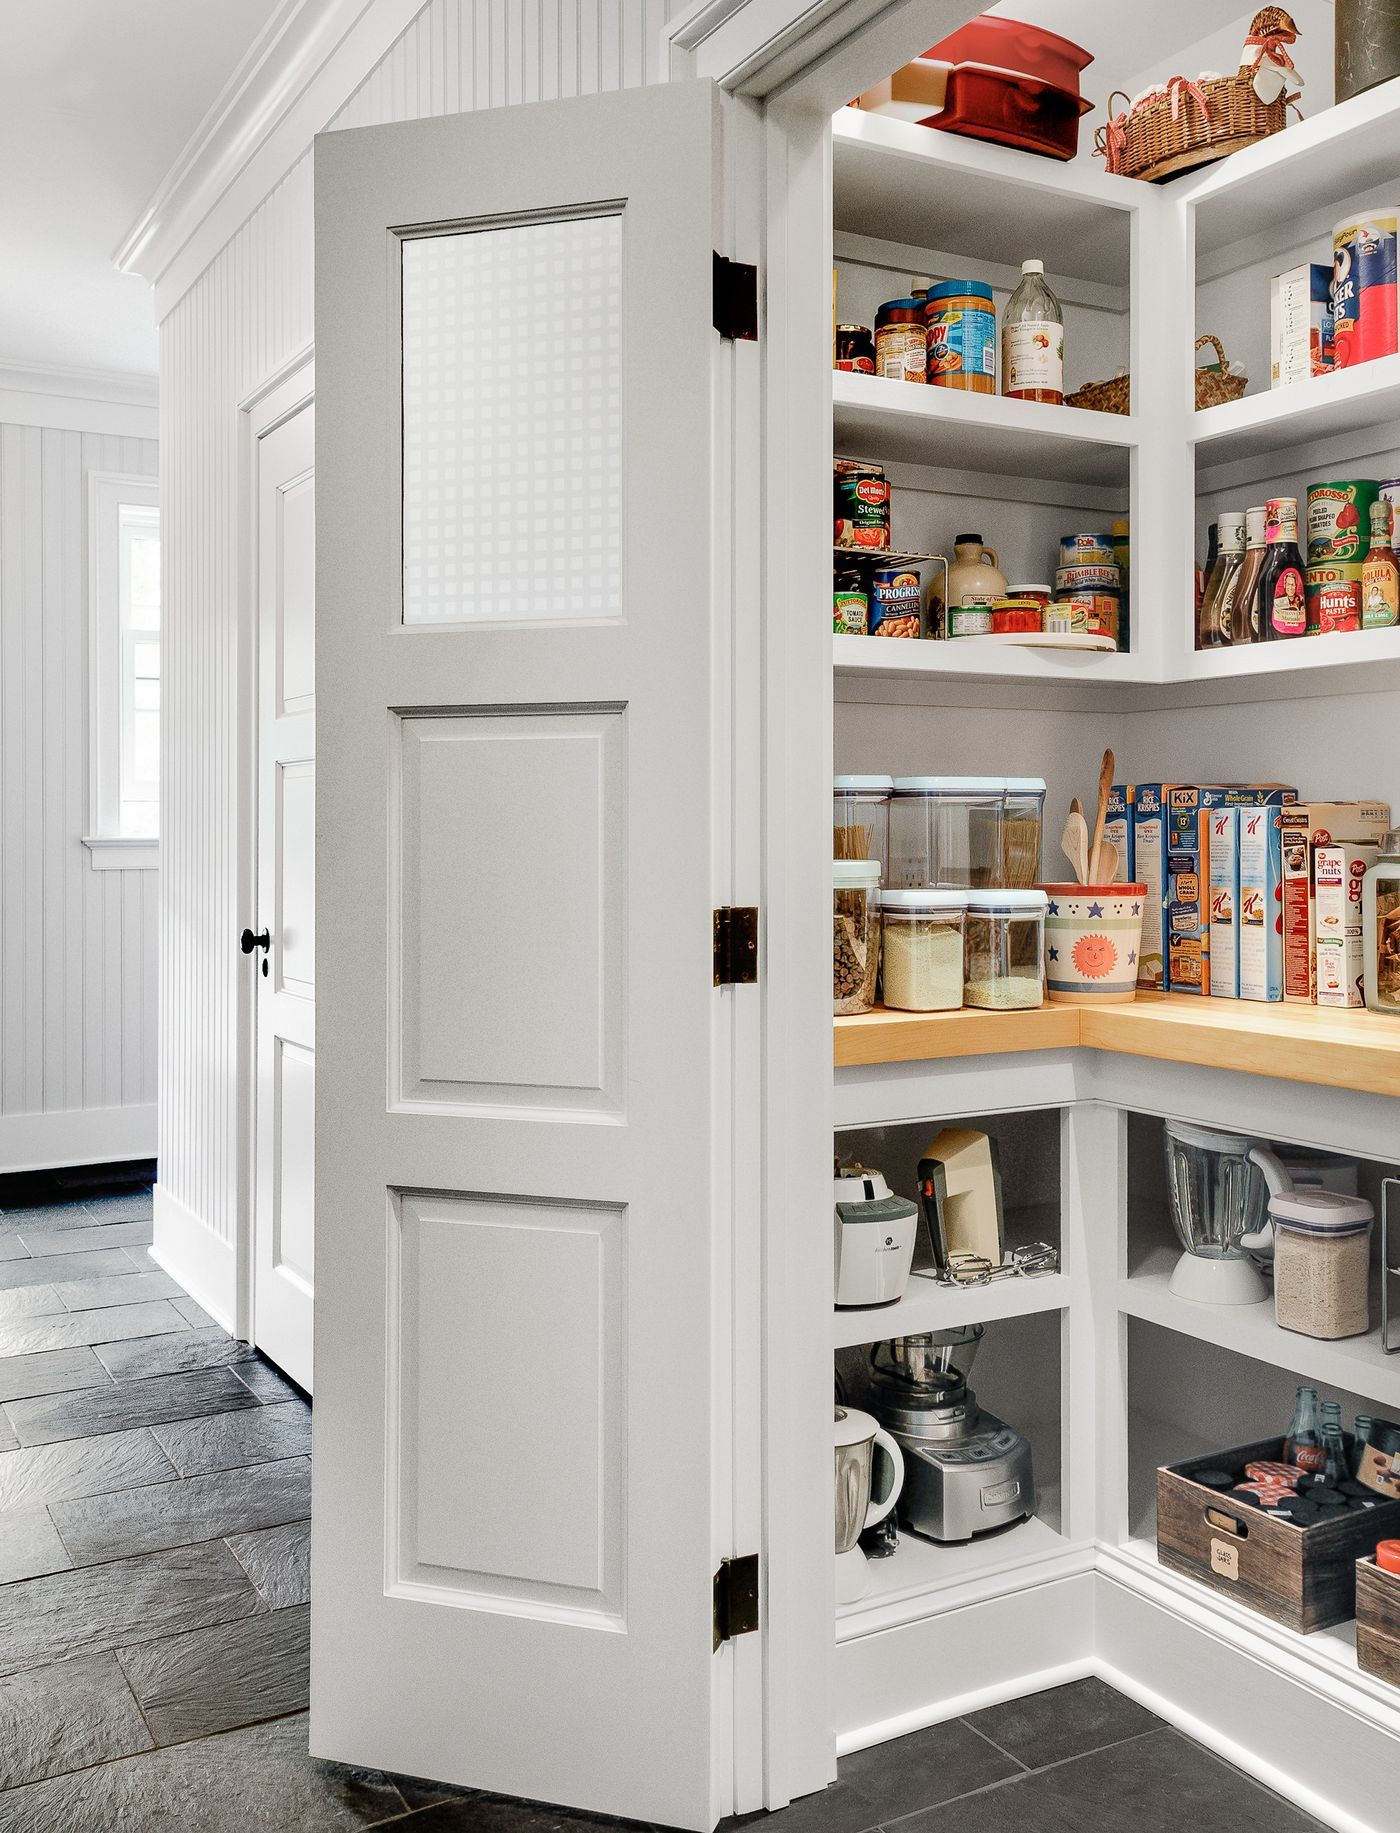 Read This Before You Put In A Pantry In 2020 Kitchen Pantry Design Pantry Design Kitchen Pantry